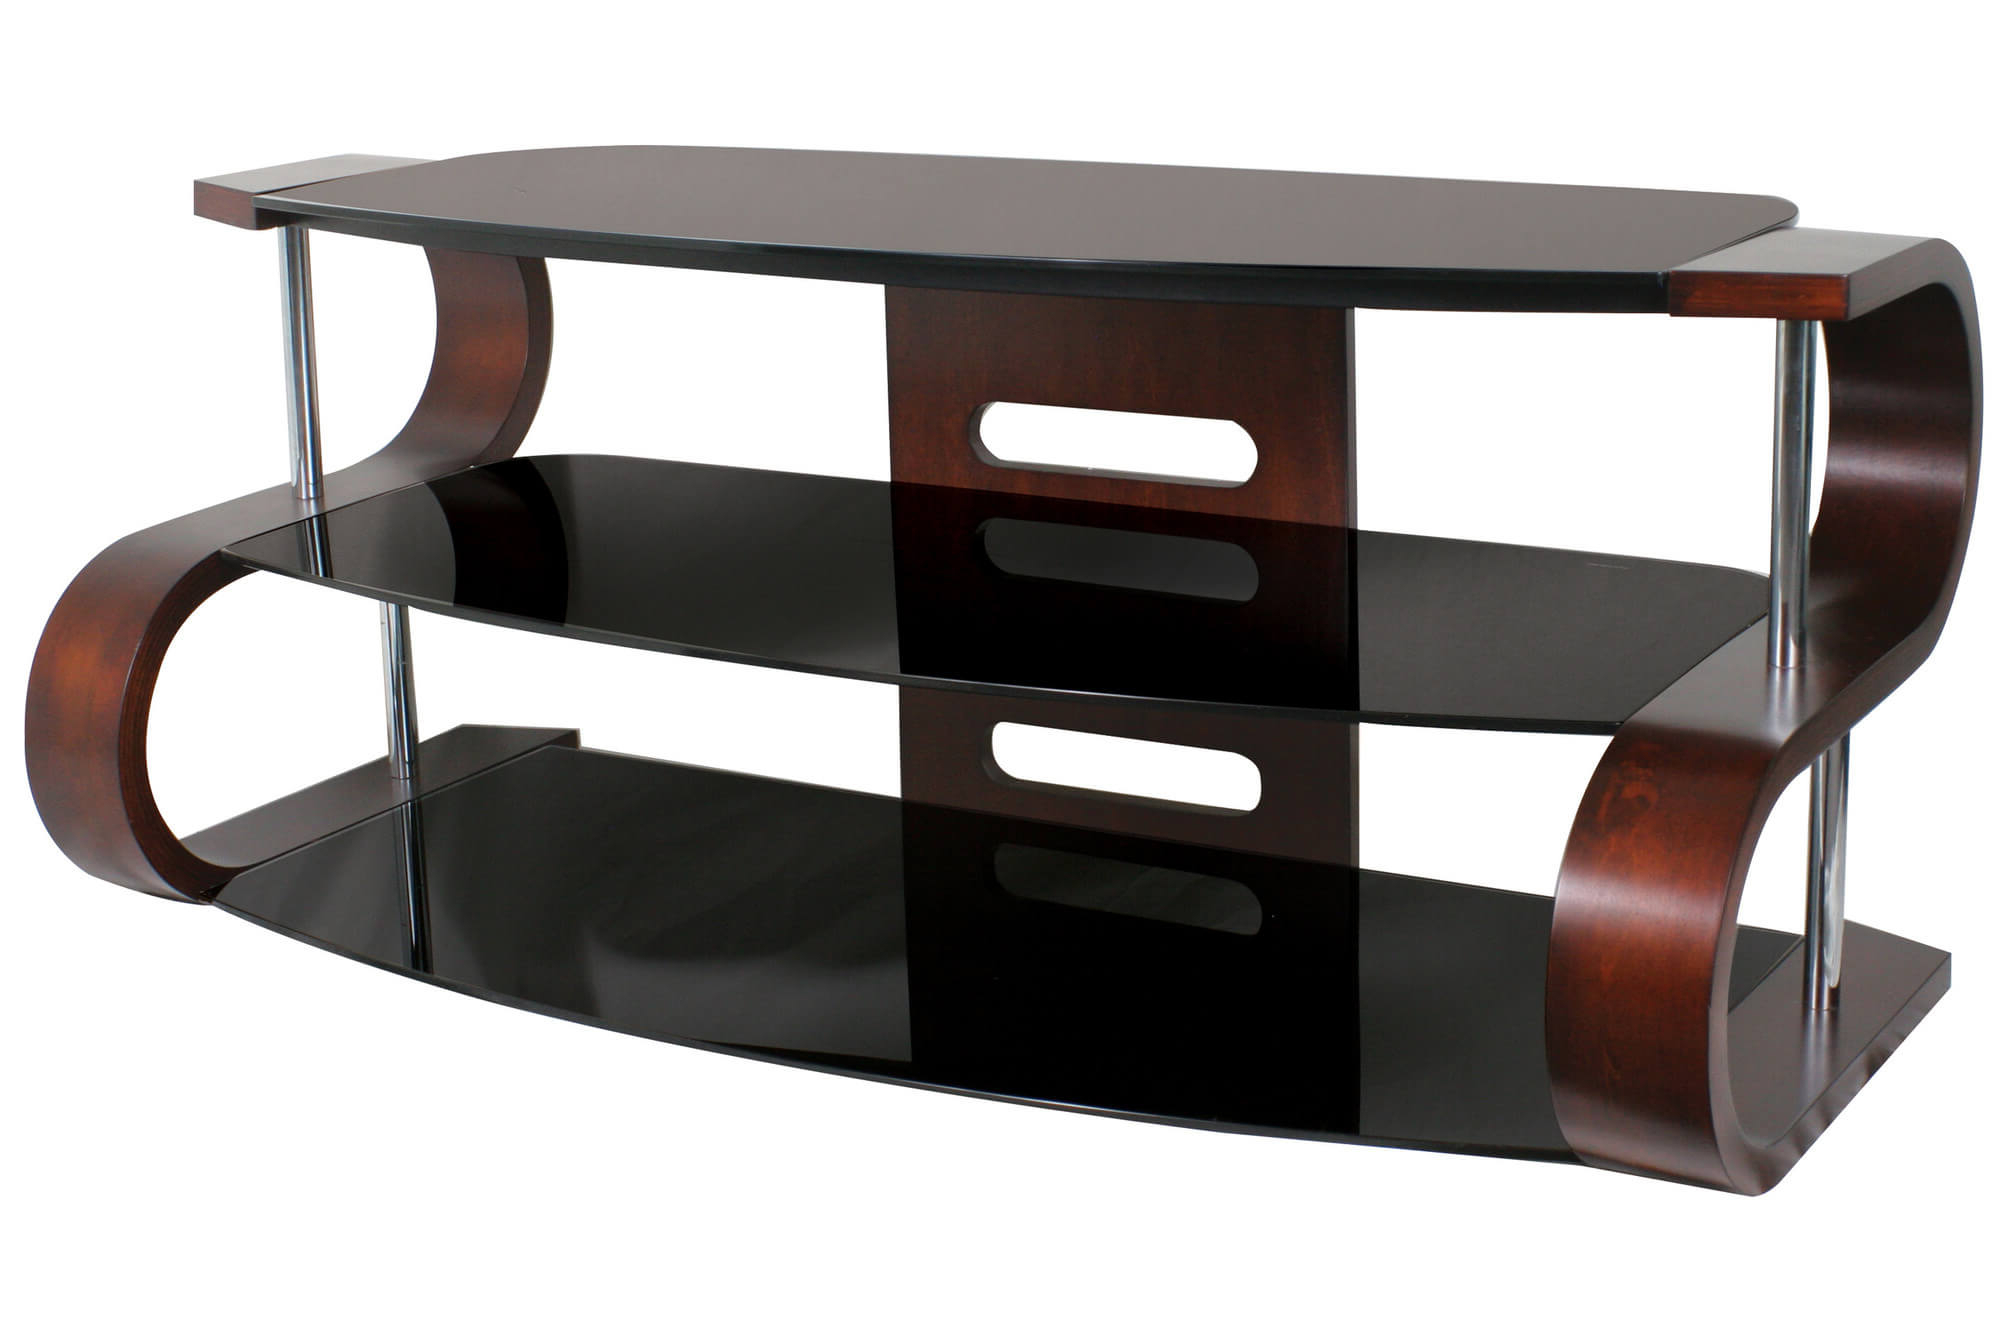 Tv Tables With Regard To Most Popular 16 Types Of Tv Stands (comprehensive Buying Guide) (View 5 of 20)